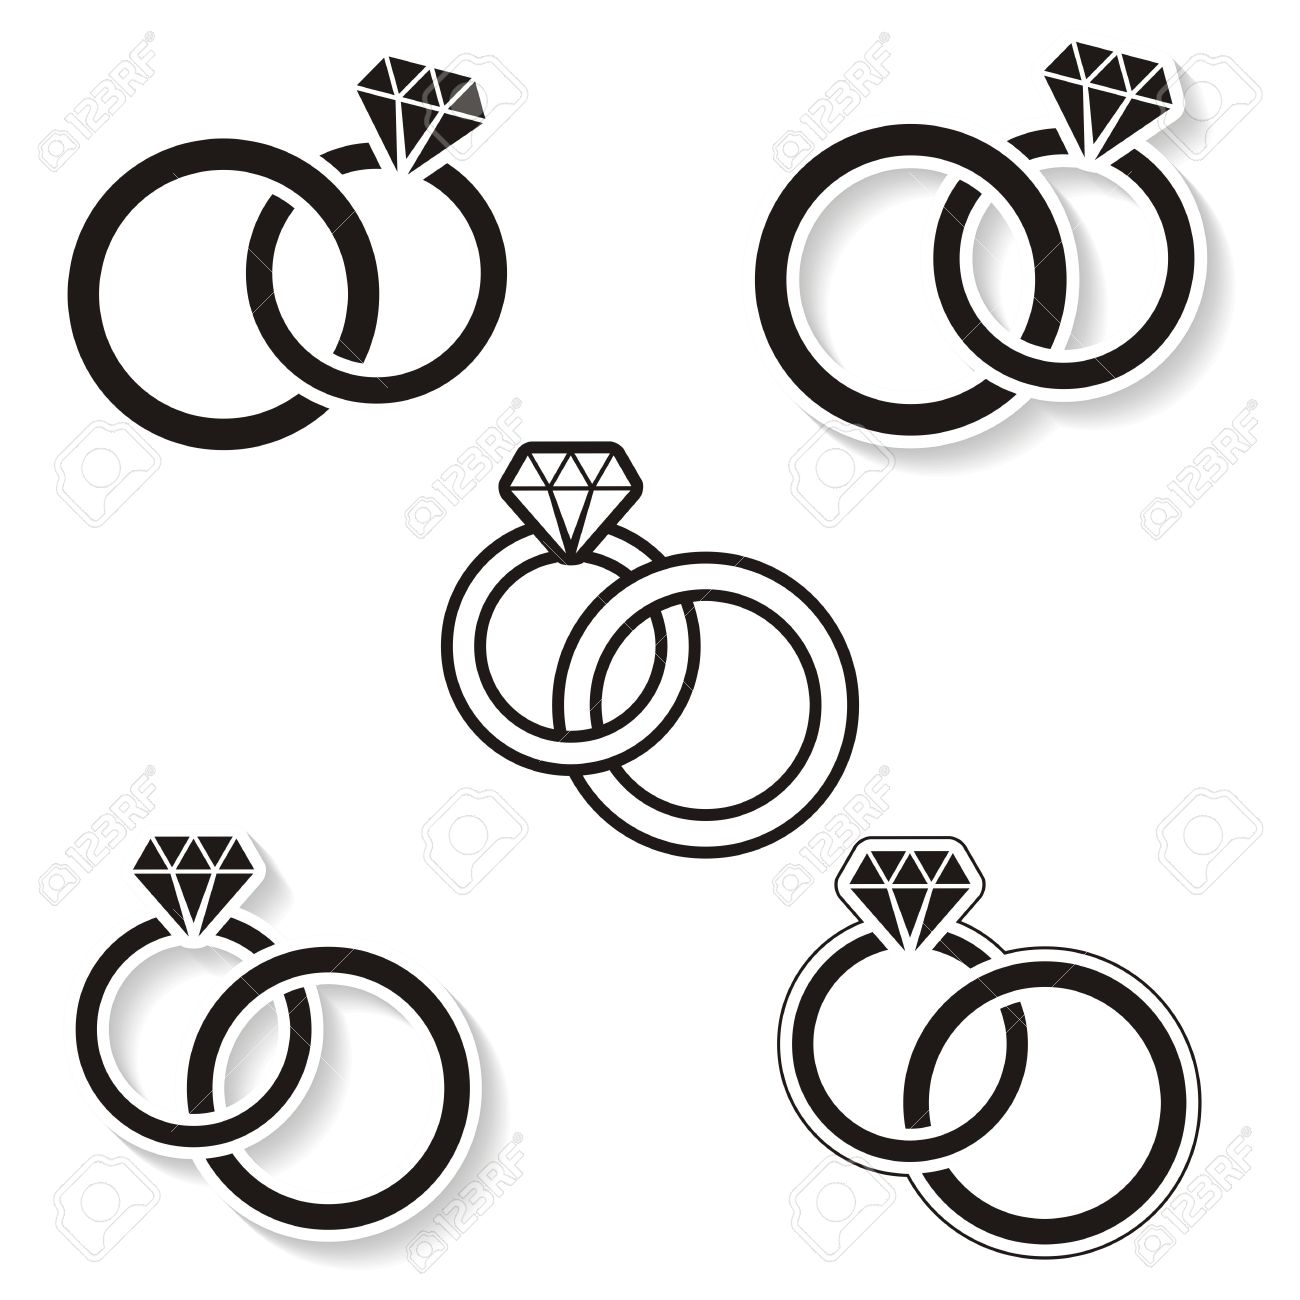 Double Ring Clipart